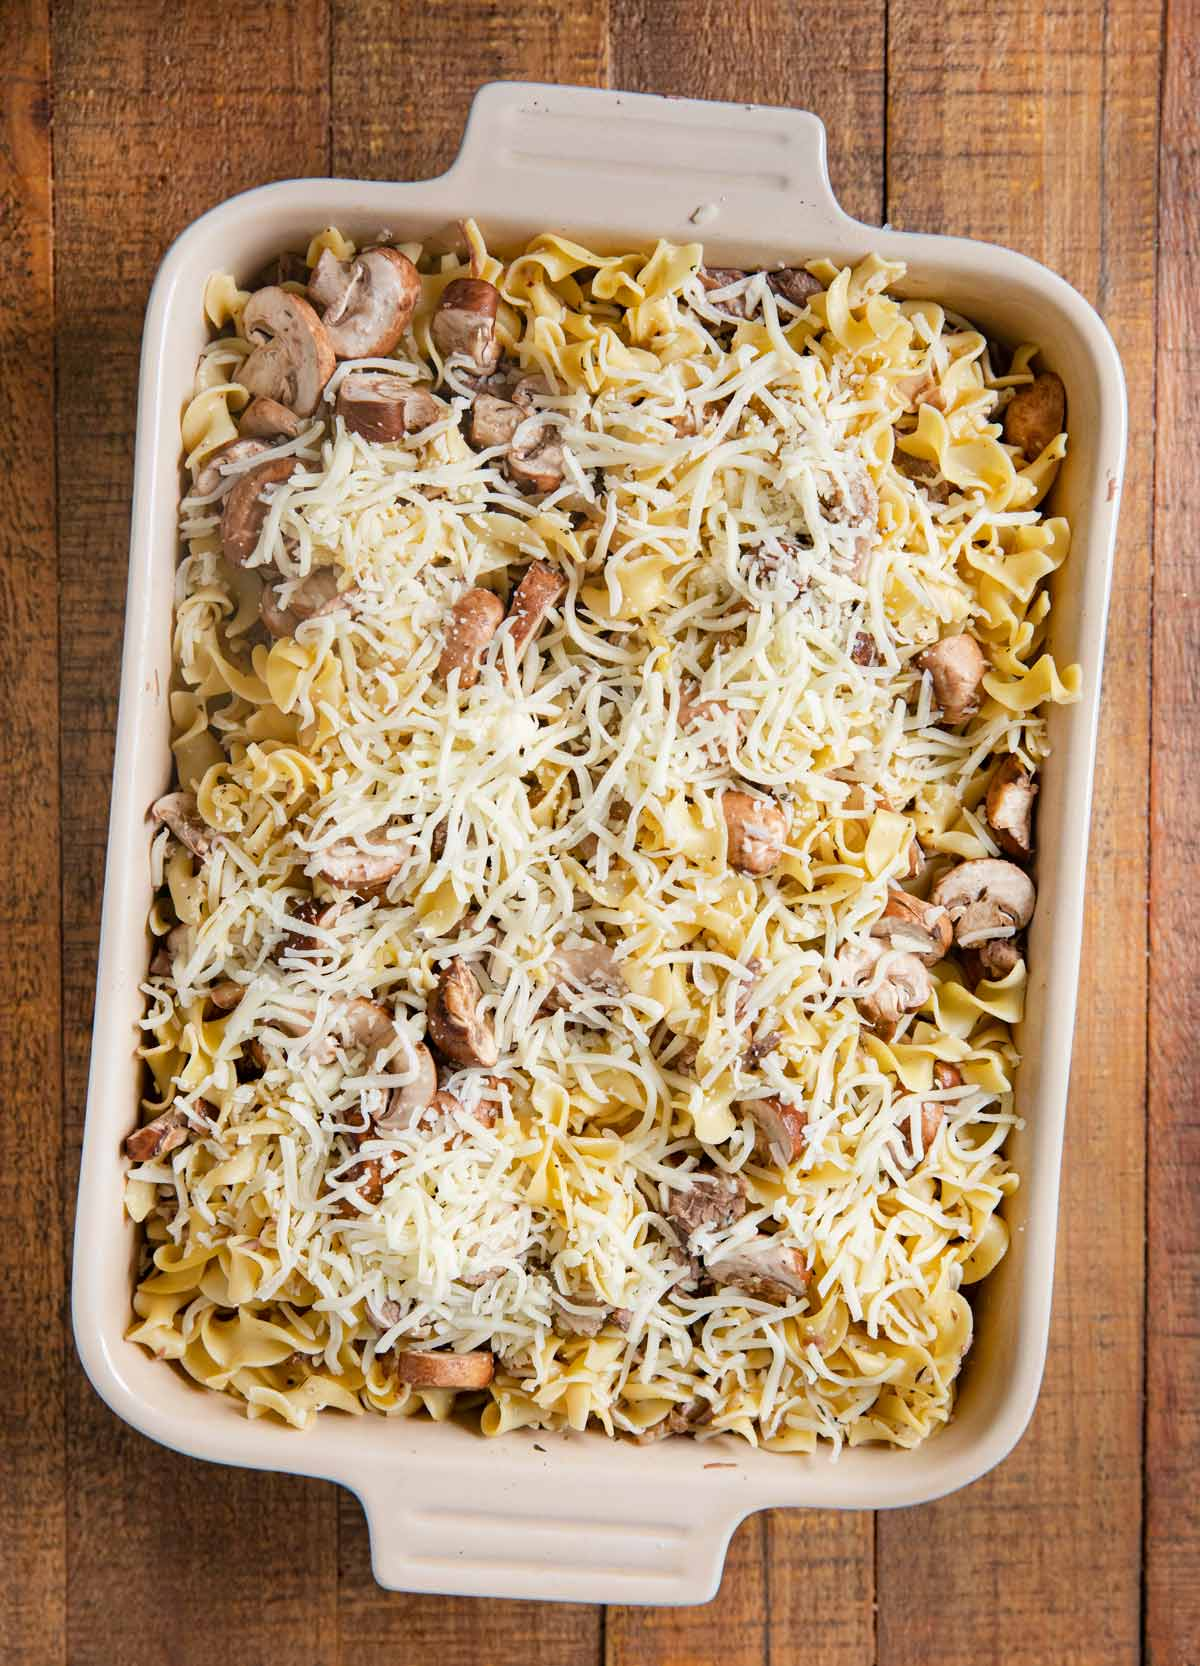 French Onion Beef Noodle Bake in baking dish before baking